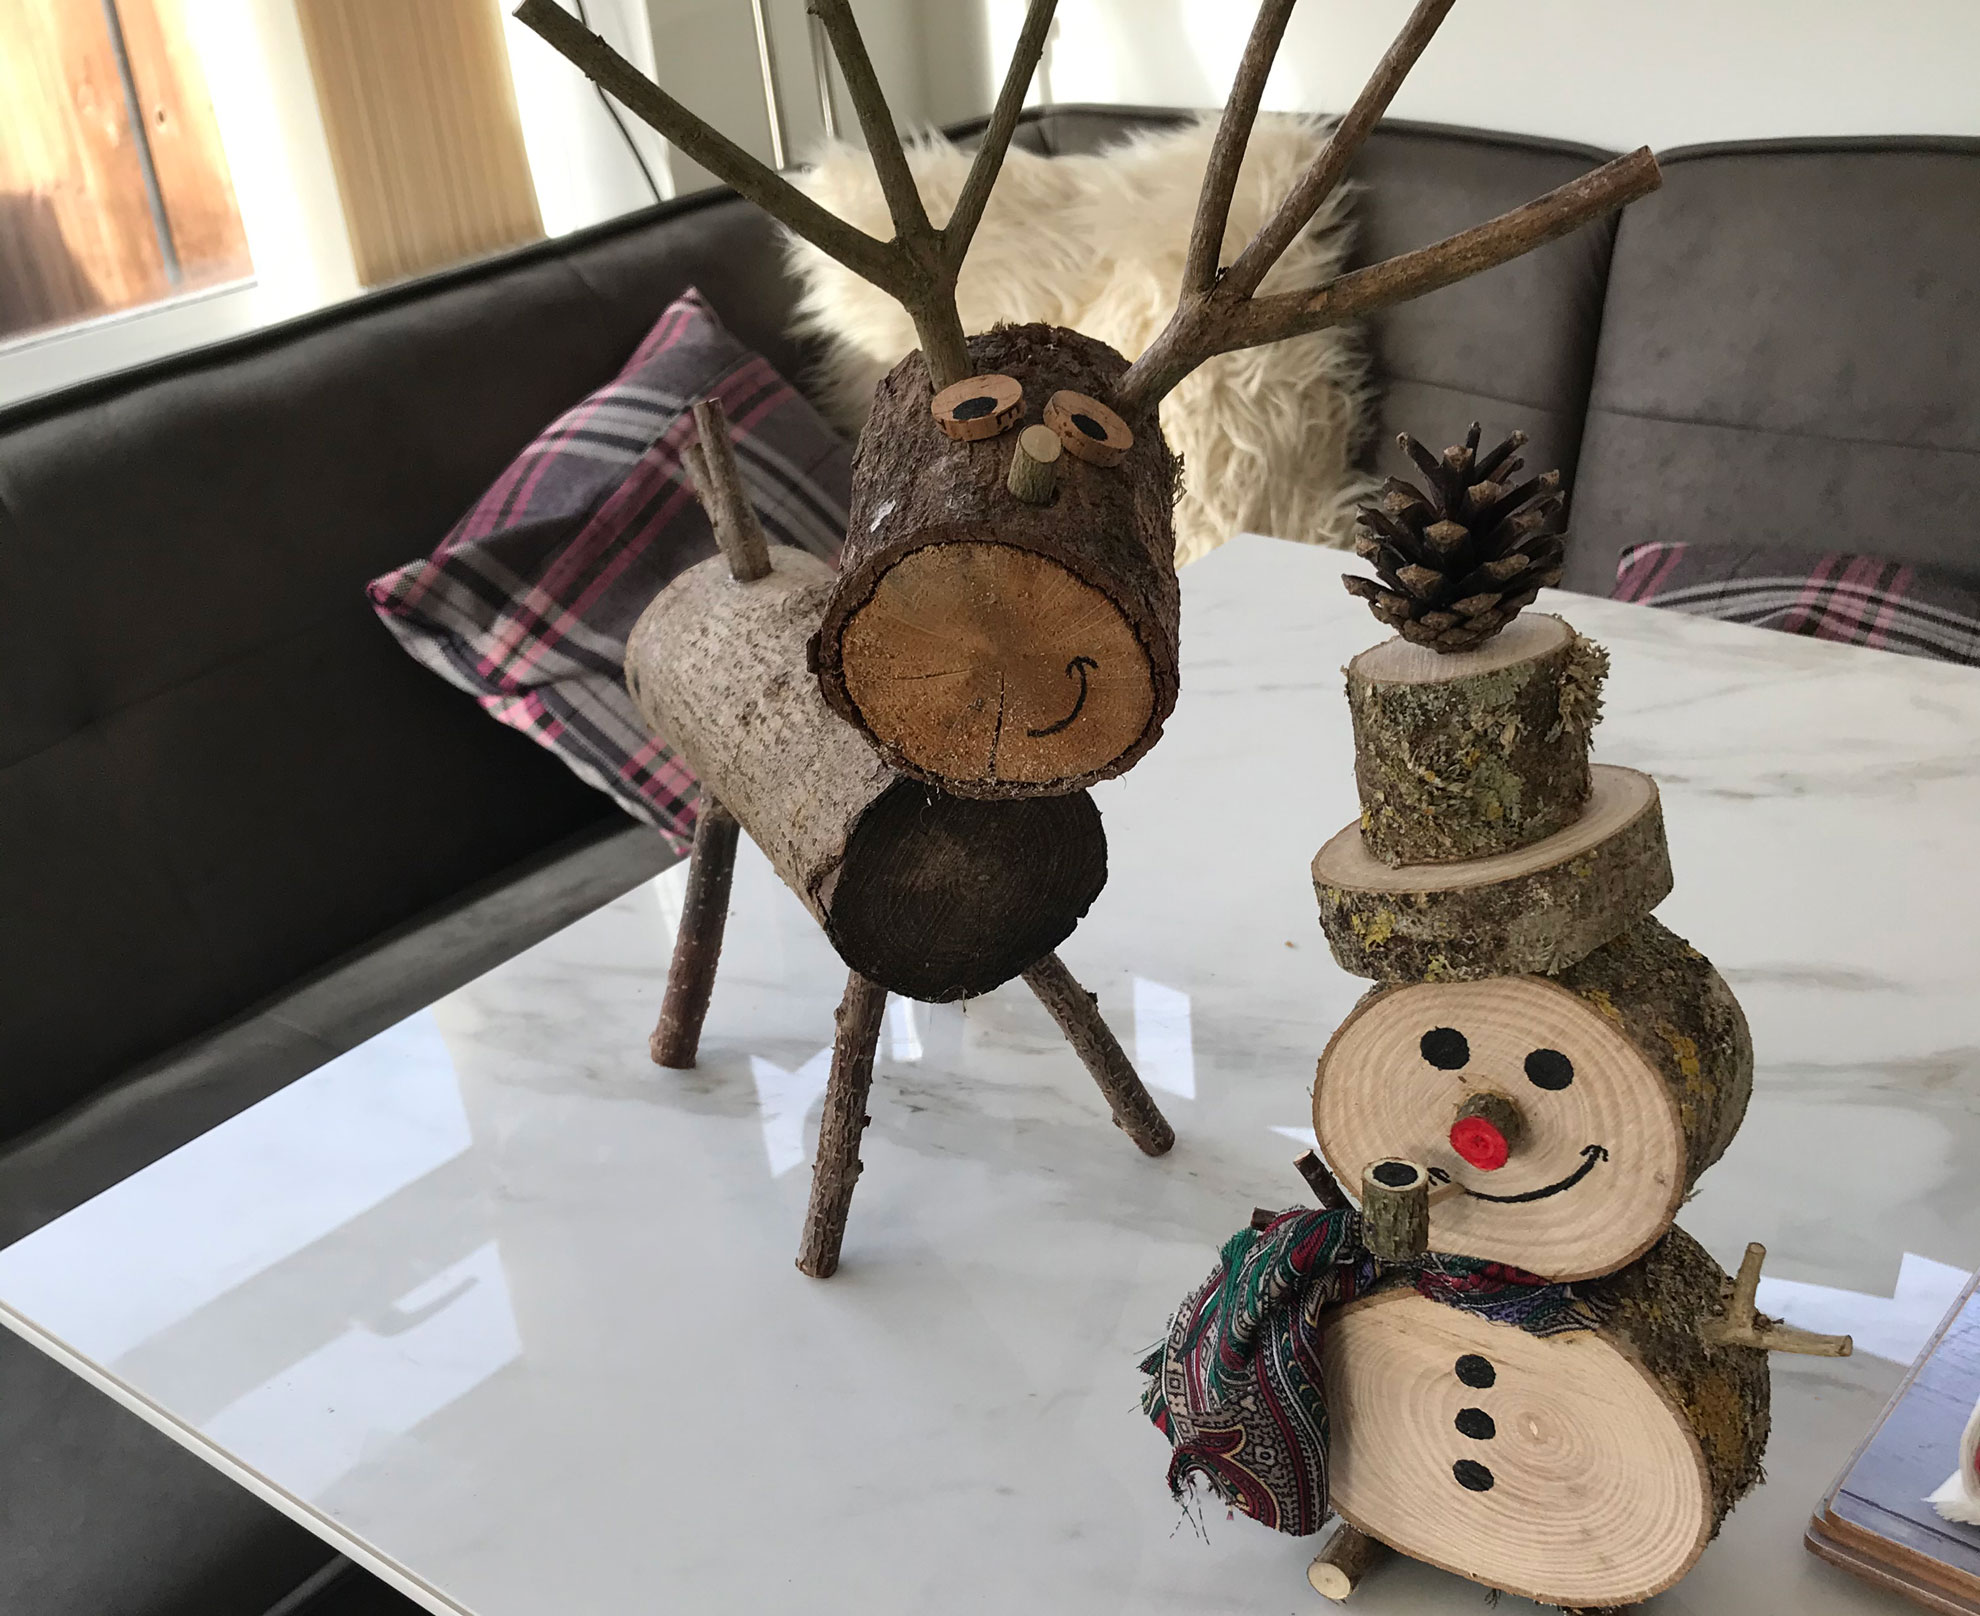 Hospiscare Heroes – From Christmas decorations to face masks